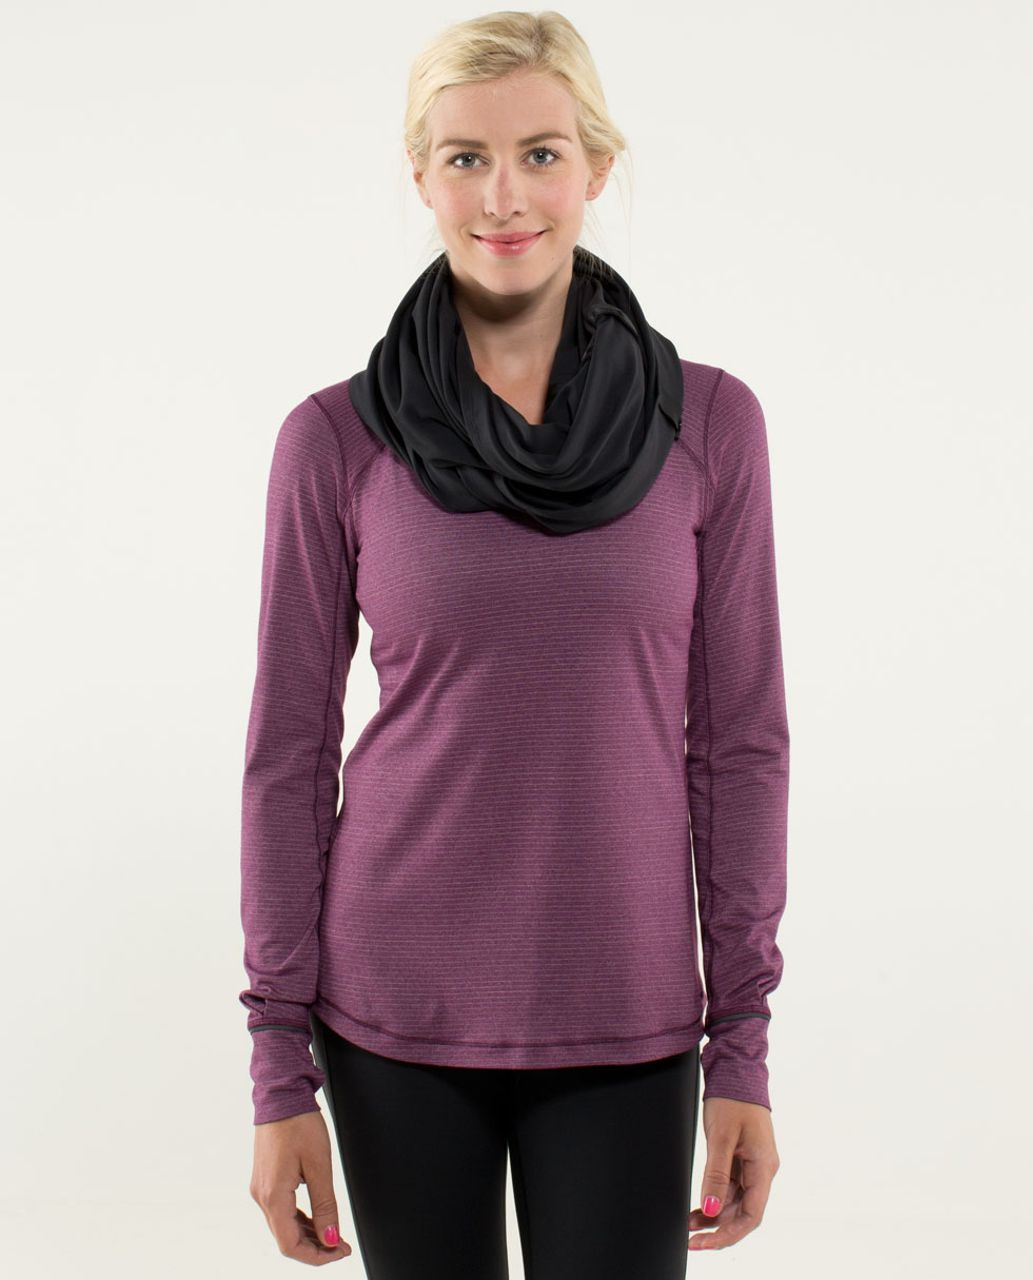 Lululemon Vinyasa Scarf *Luon Light - Black